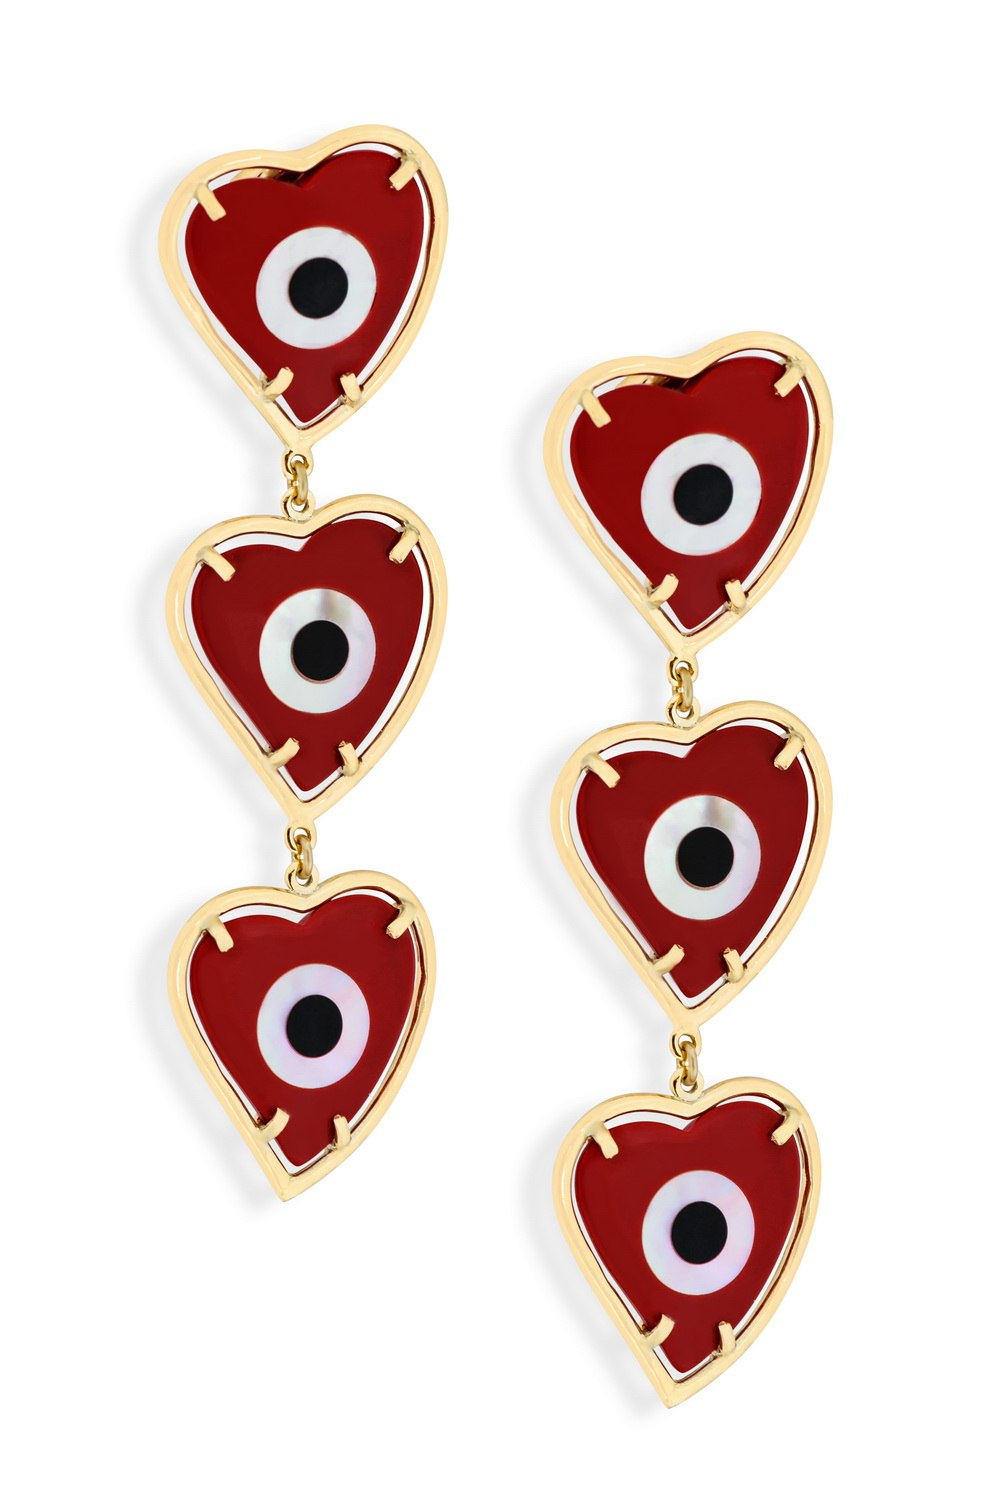 KESSARIS Triple Evil Eye Red Heart Earrings SKP180116